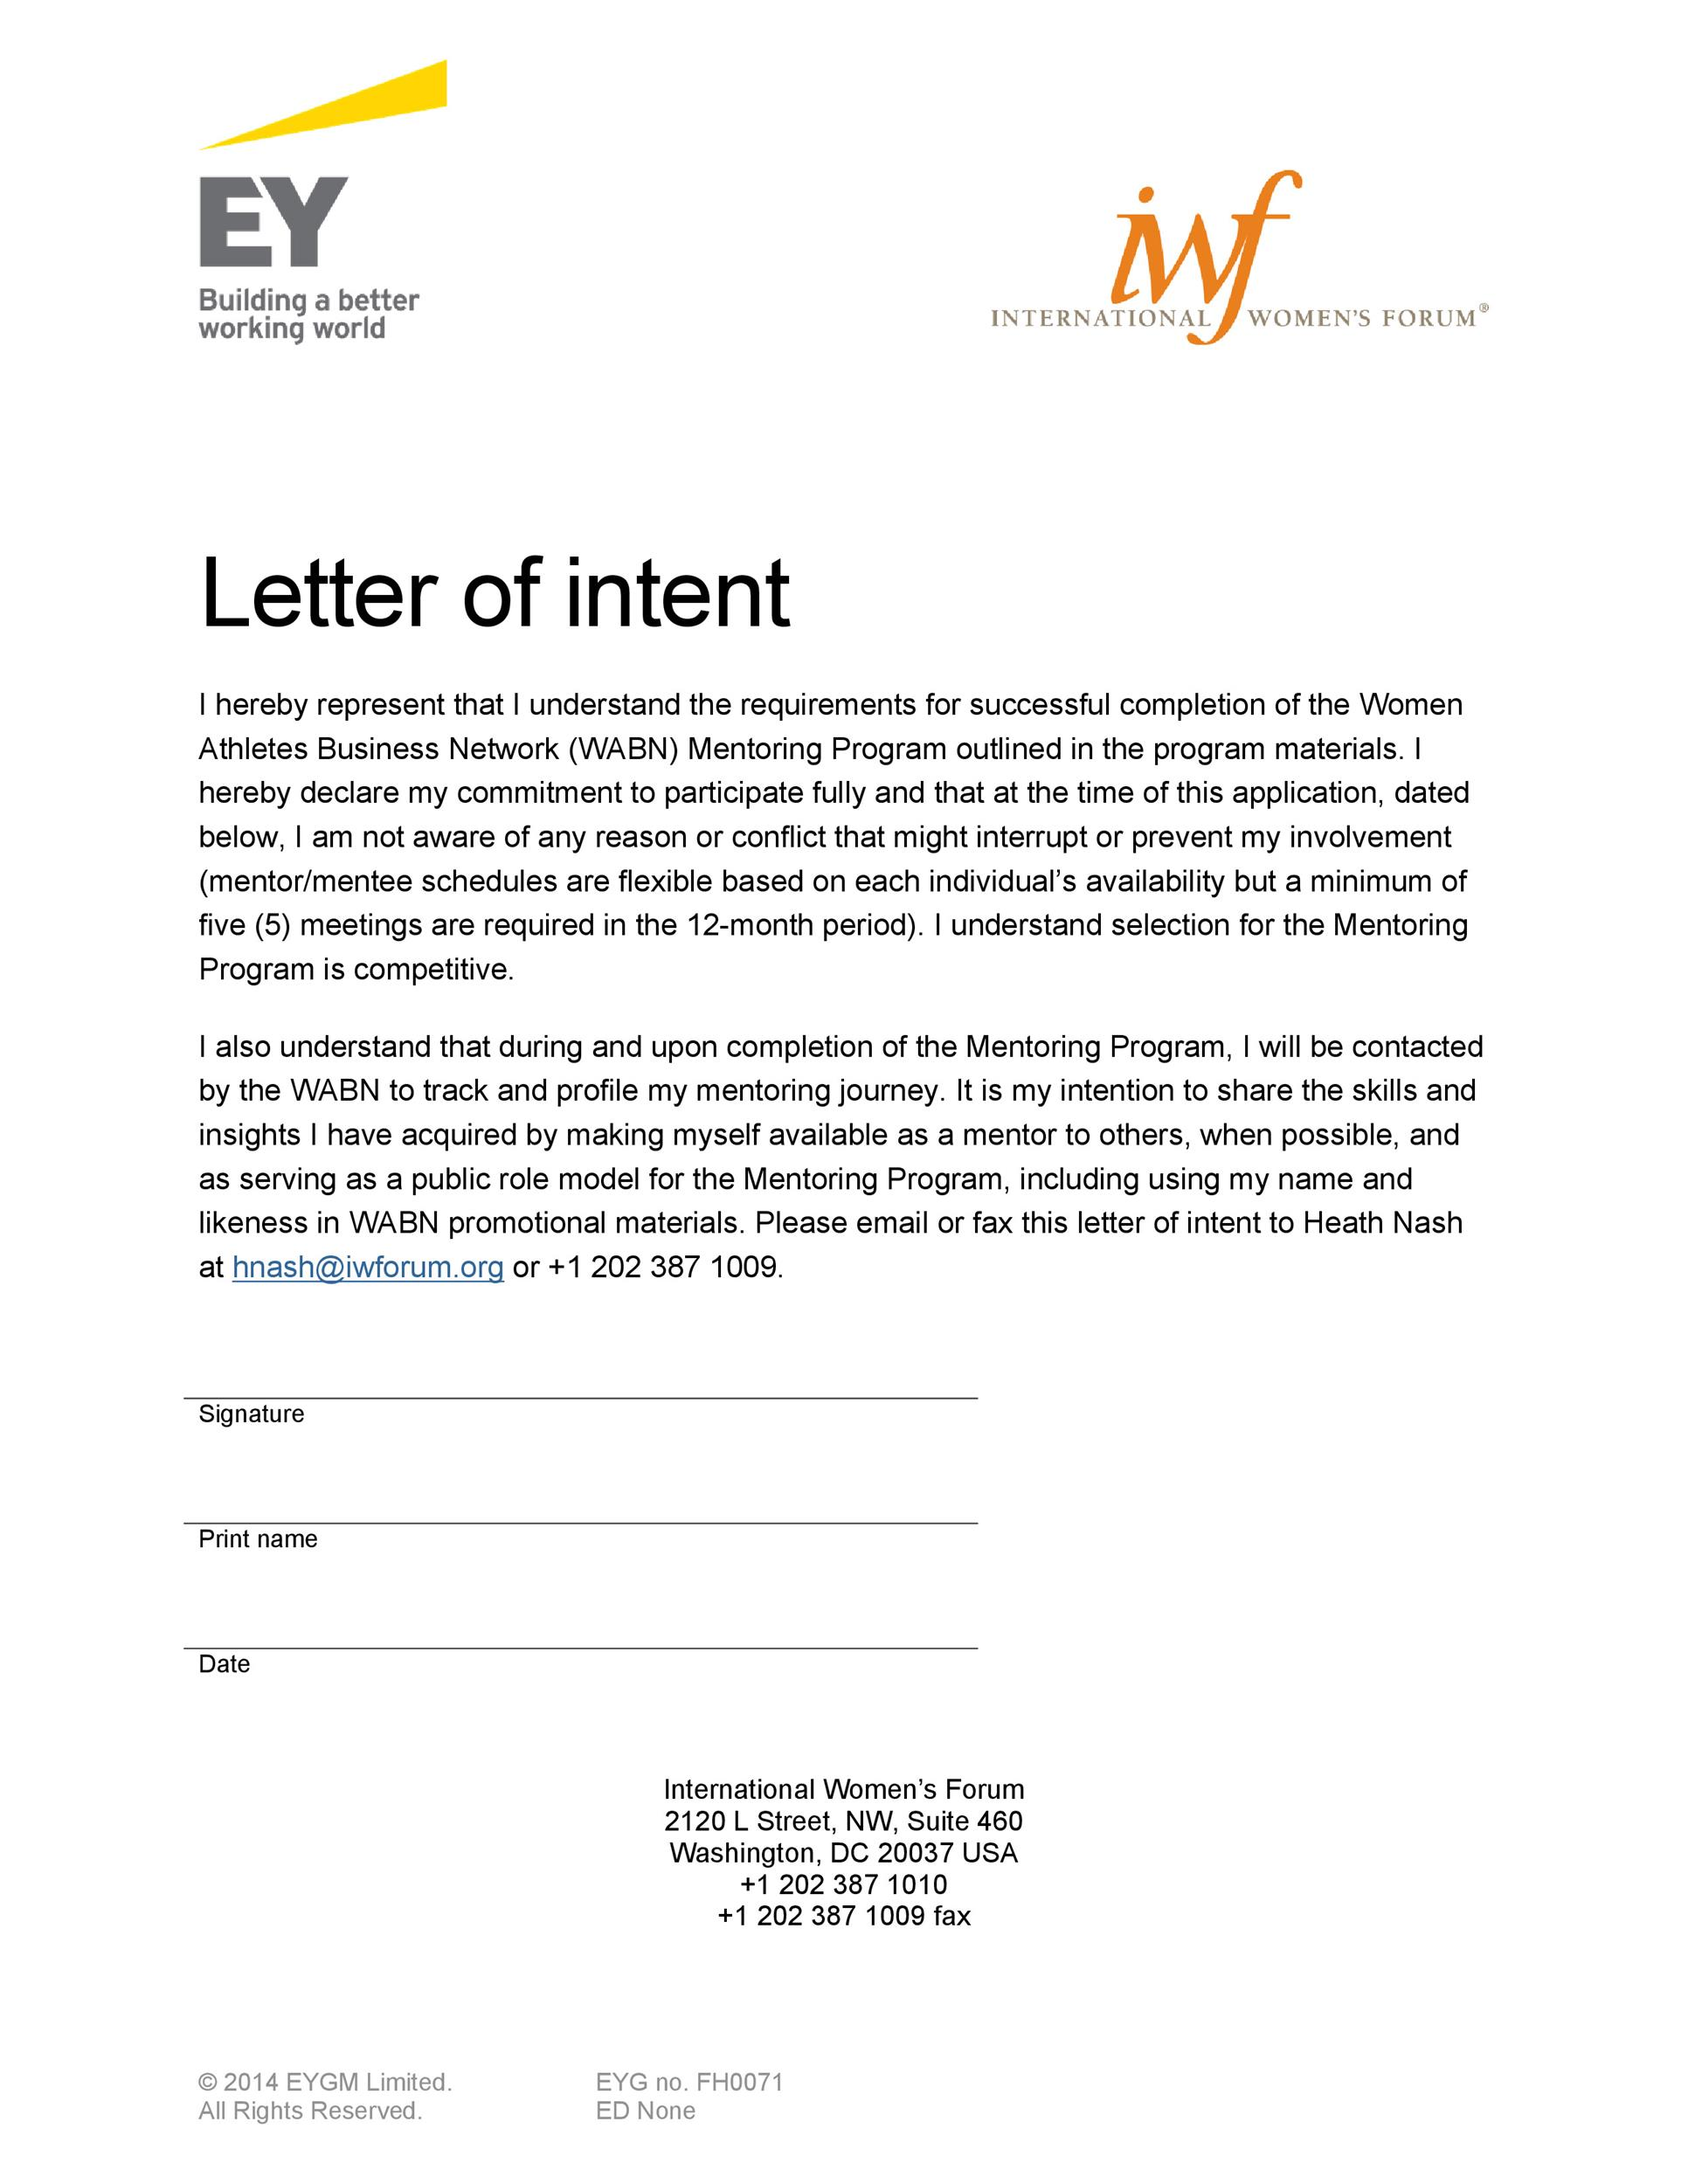 Letter Of Intent To Do Business Example from templatelab.com